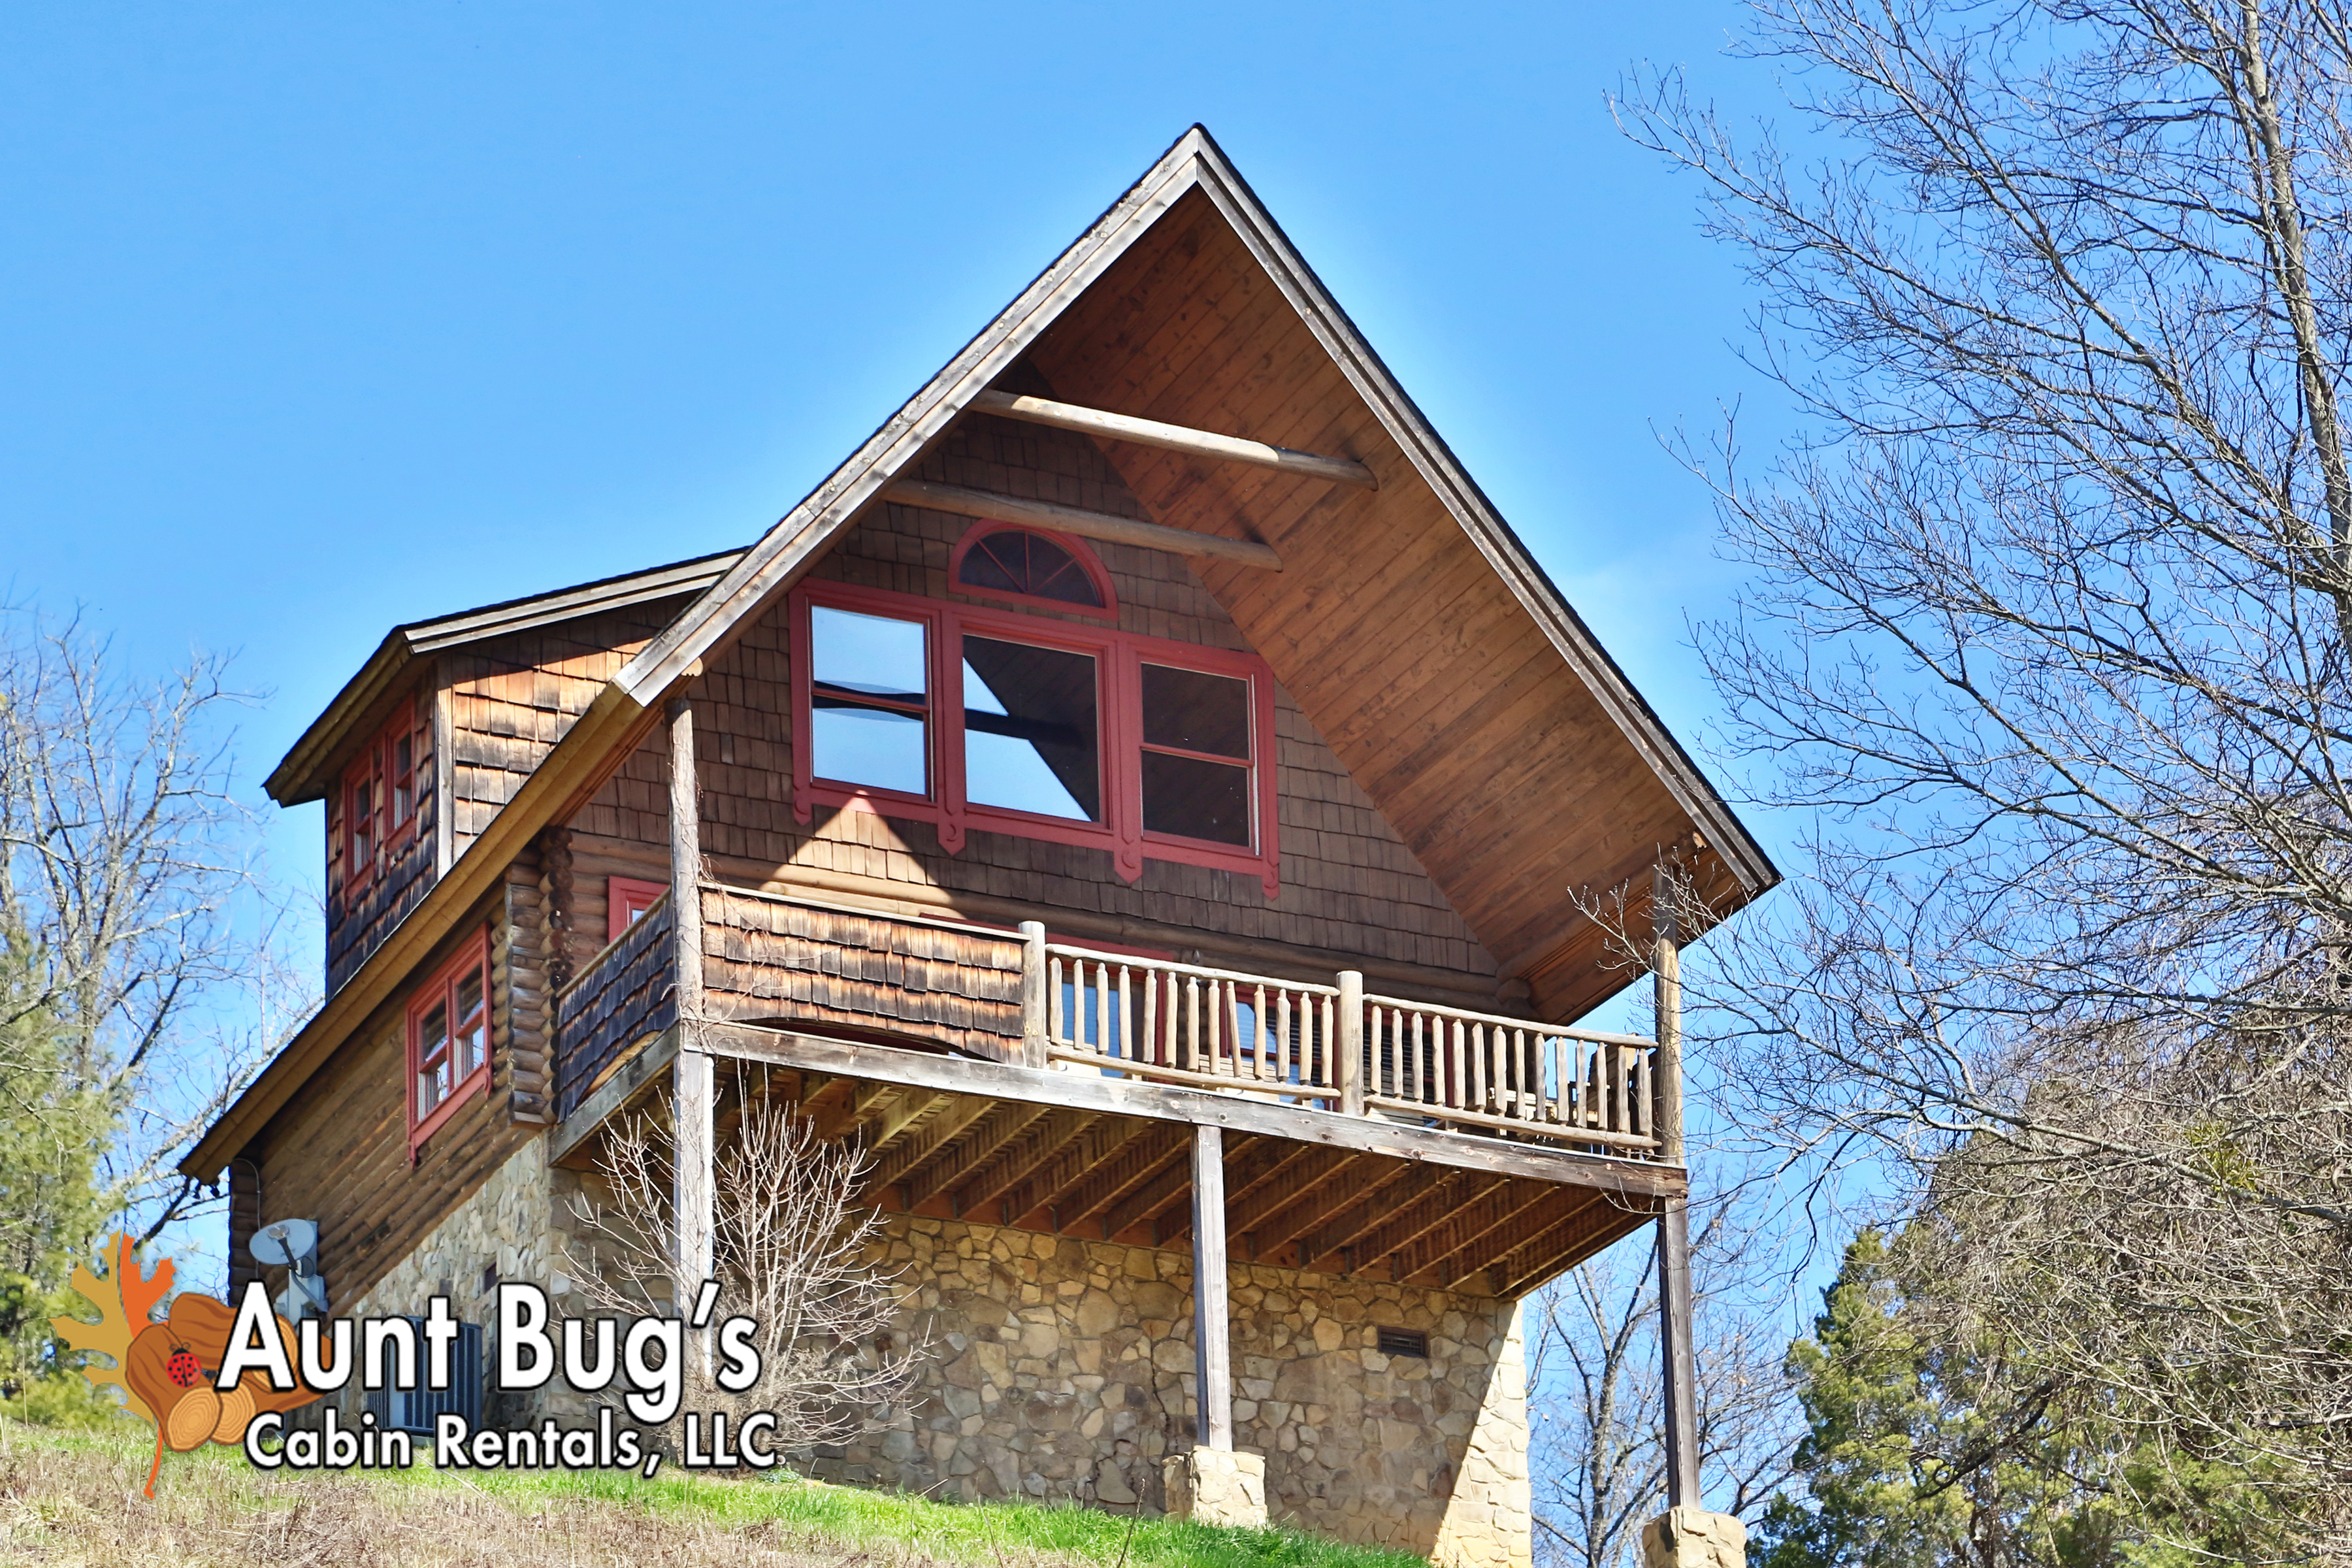 gatlinburg cabin forge rental and rentals tennessee chalets pigeon hot tub chalet cabins studio with whirlpool fireside online